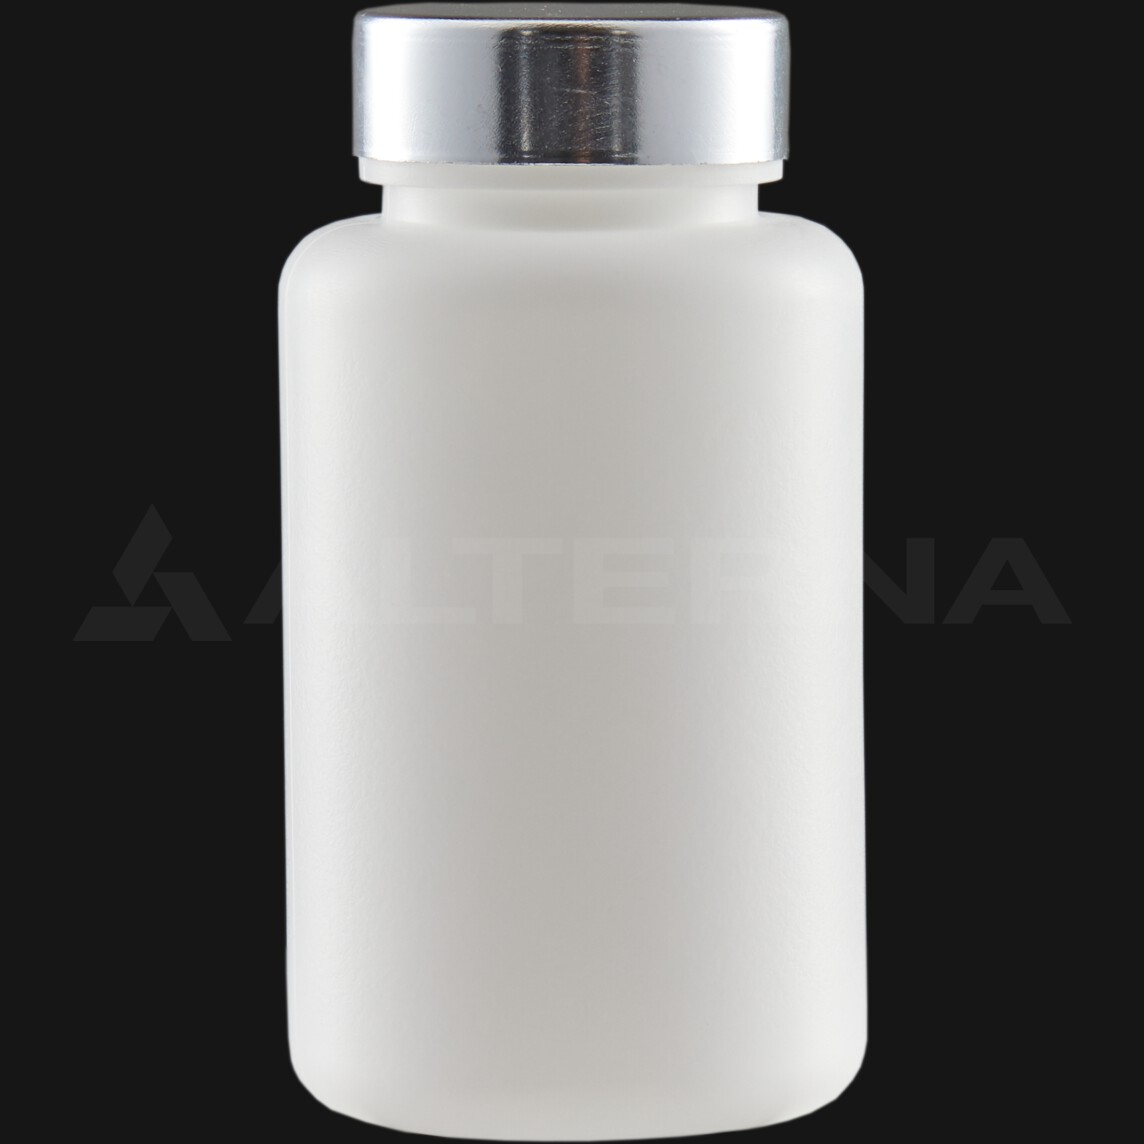 150 ml HDPE Pill Bottle with 38 mm Metal Cap